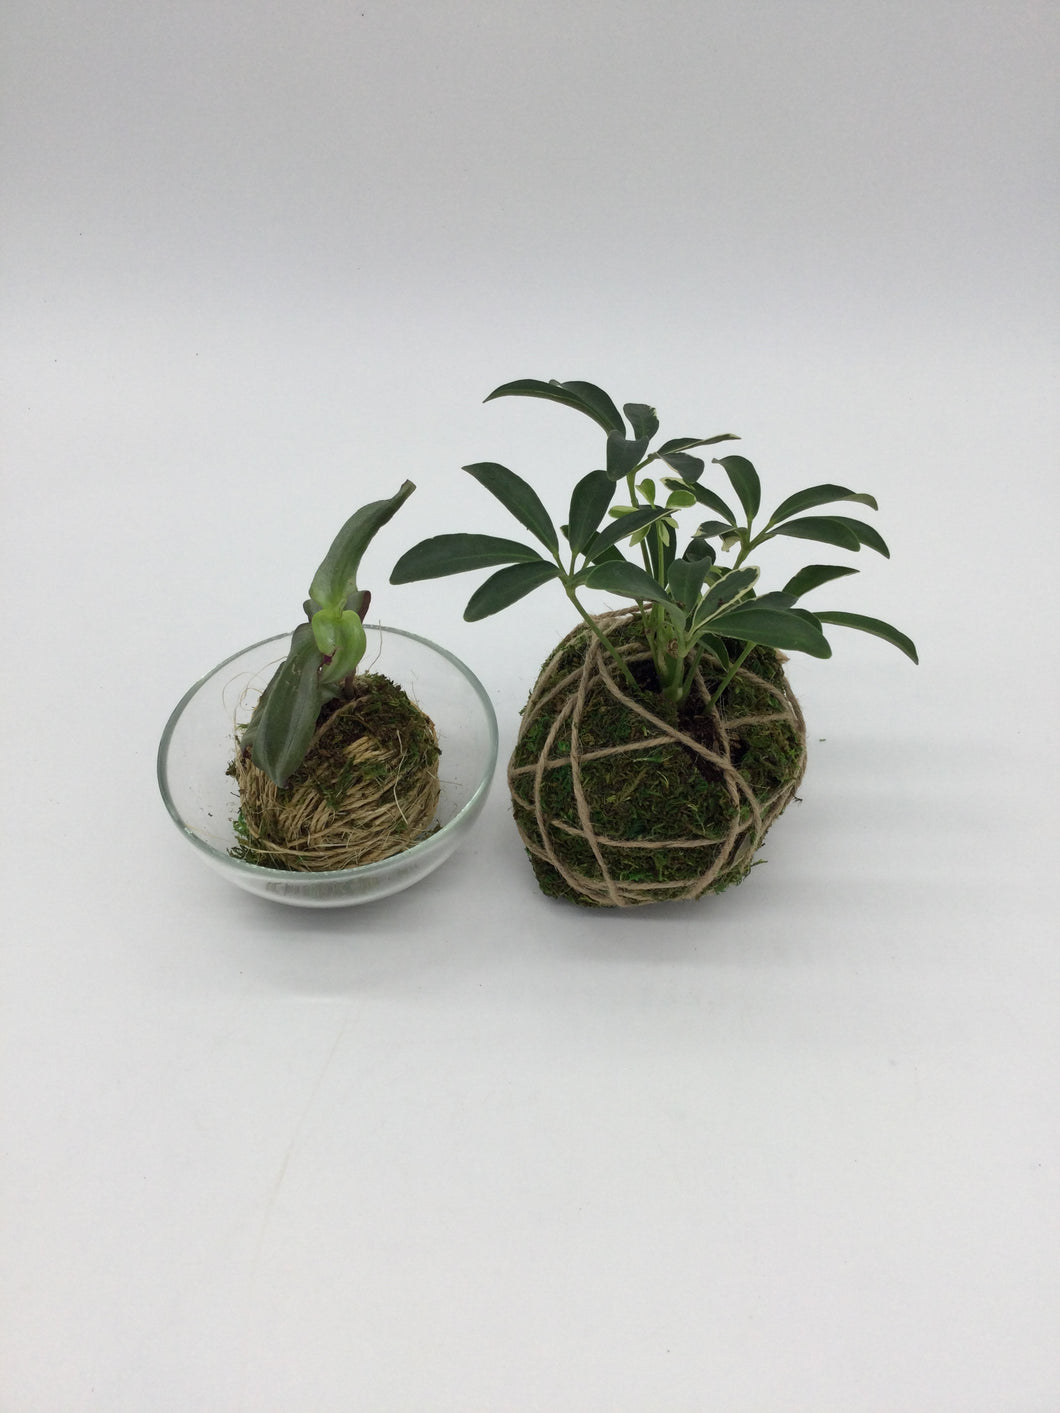 Small inch plant kokedama in a glass bowl next to a big schefflera kokedama